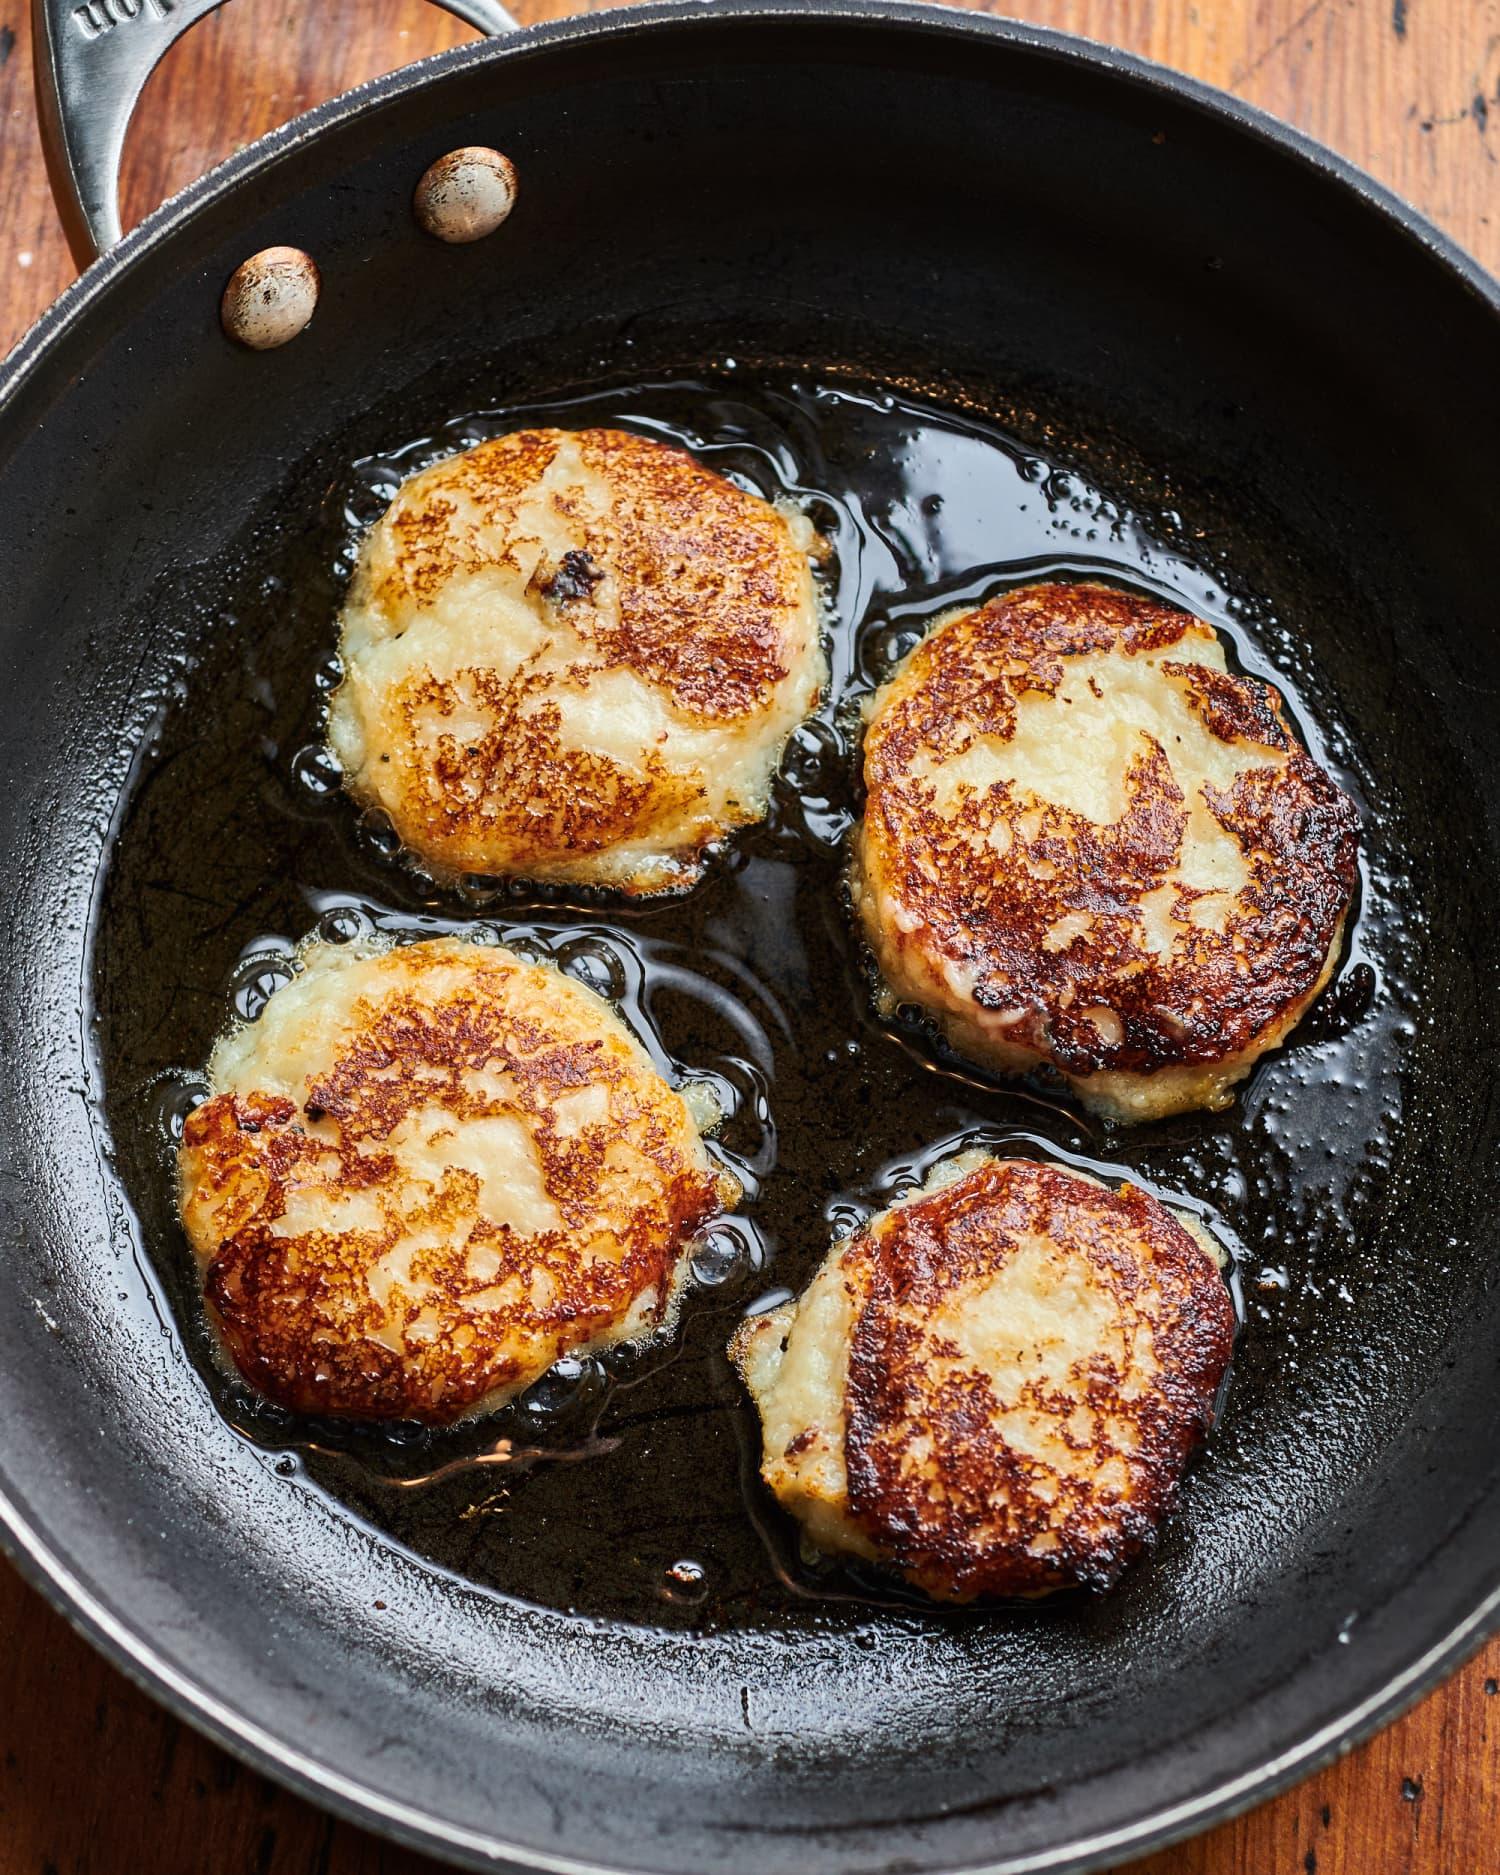 Fluffy Mashed Potato Cakes Are the Best Way to Eat Leftover Mashed Potatoes